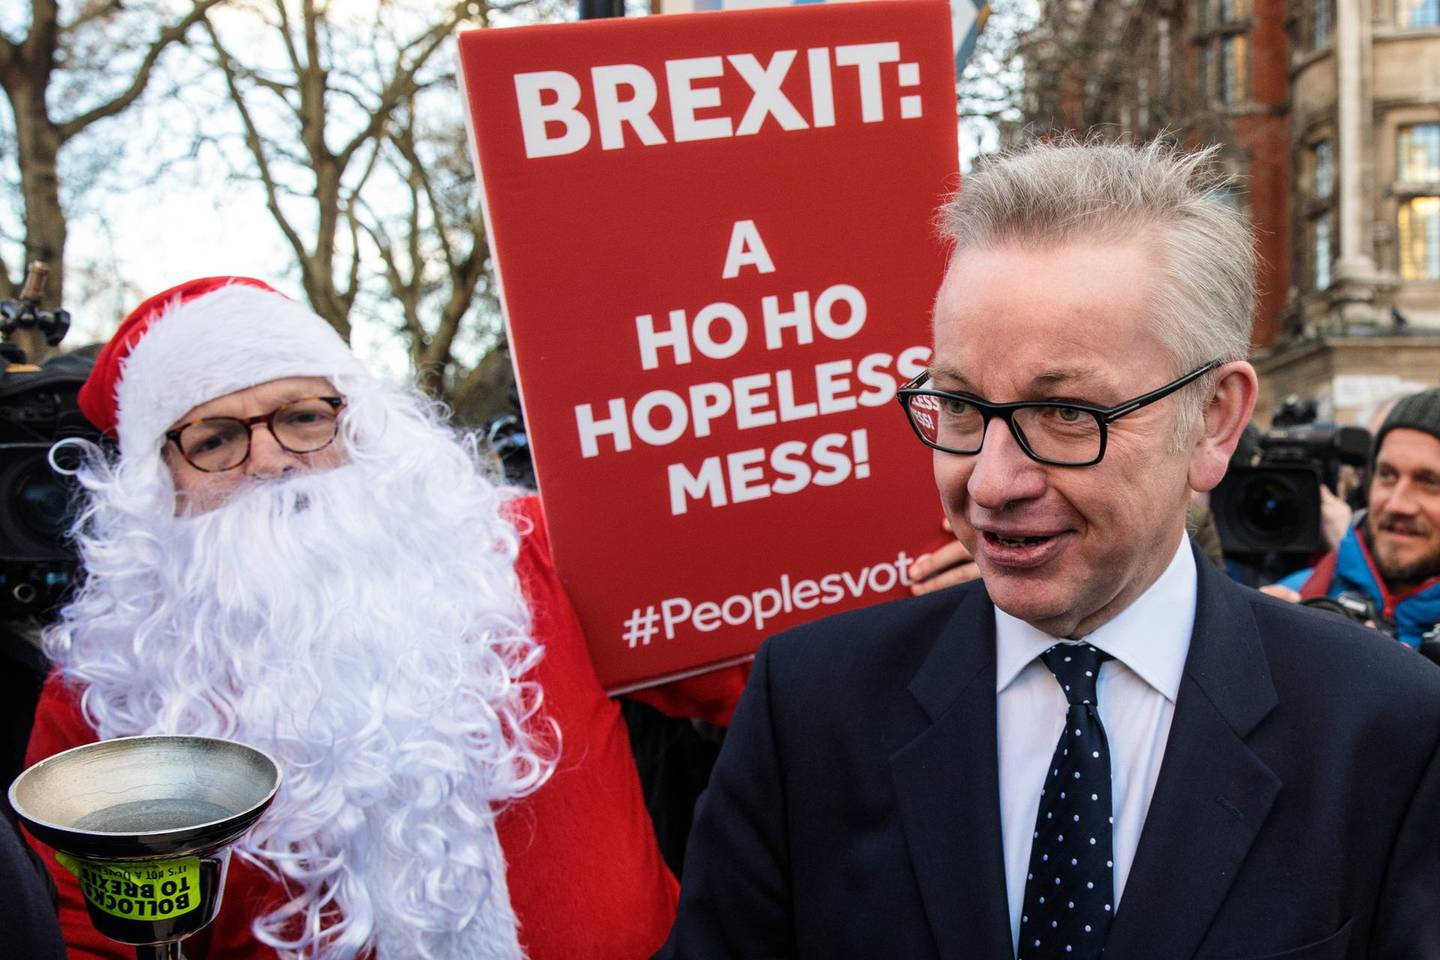 LONDON, ENGLAND - DECEMBER 12: Environment Secretary Michael Gove is accosted by a protester in a Father Christmas outfit after speaking the media in Westminster on December 12, 2018 in London, England. Sir Graham Brady, the chairman of the 1922 Committee, has received the necessary 48 letters (15% of the parliamentary party) from Conservative MP's that will trigger a vote of no confidence in Prime Minister Theresa May. (Photo by Jack Taylor/Getty Images)